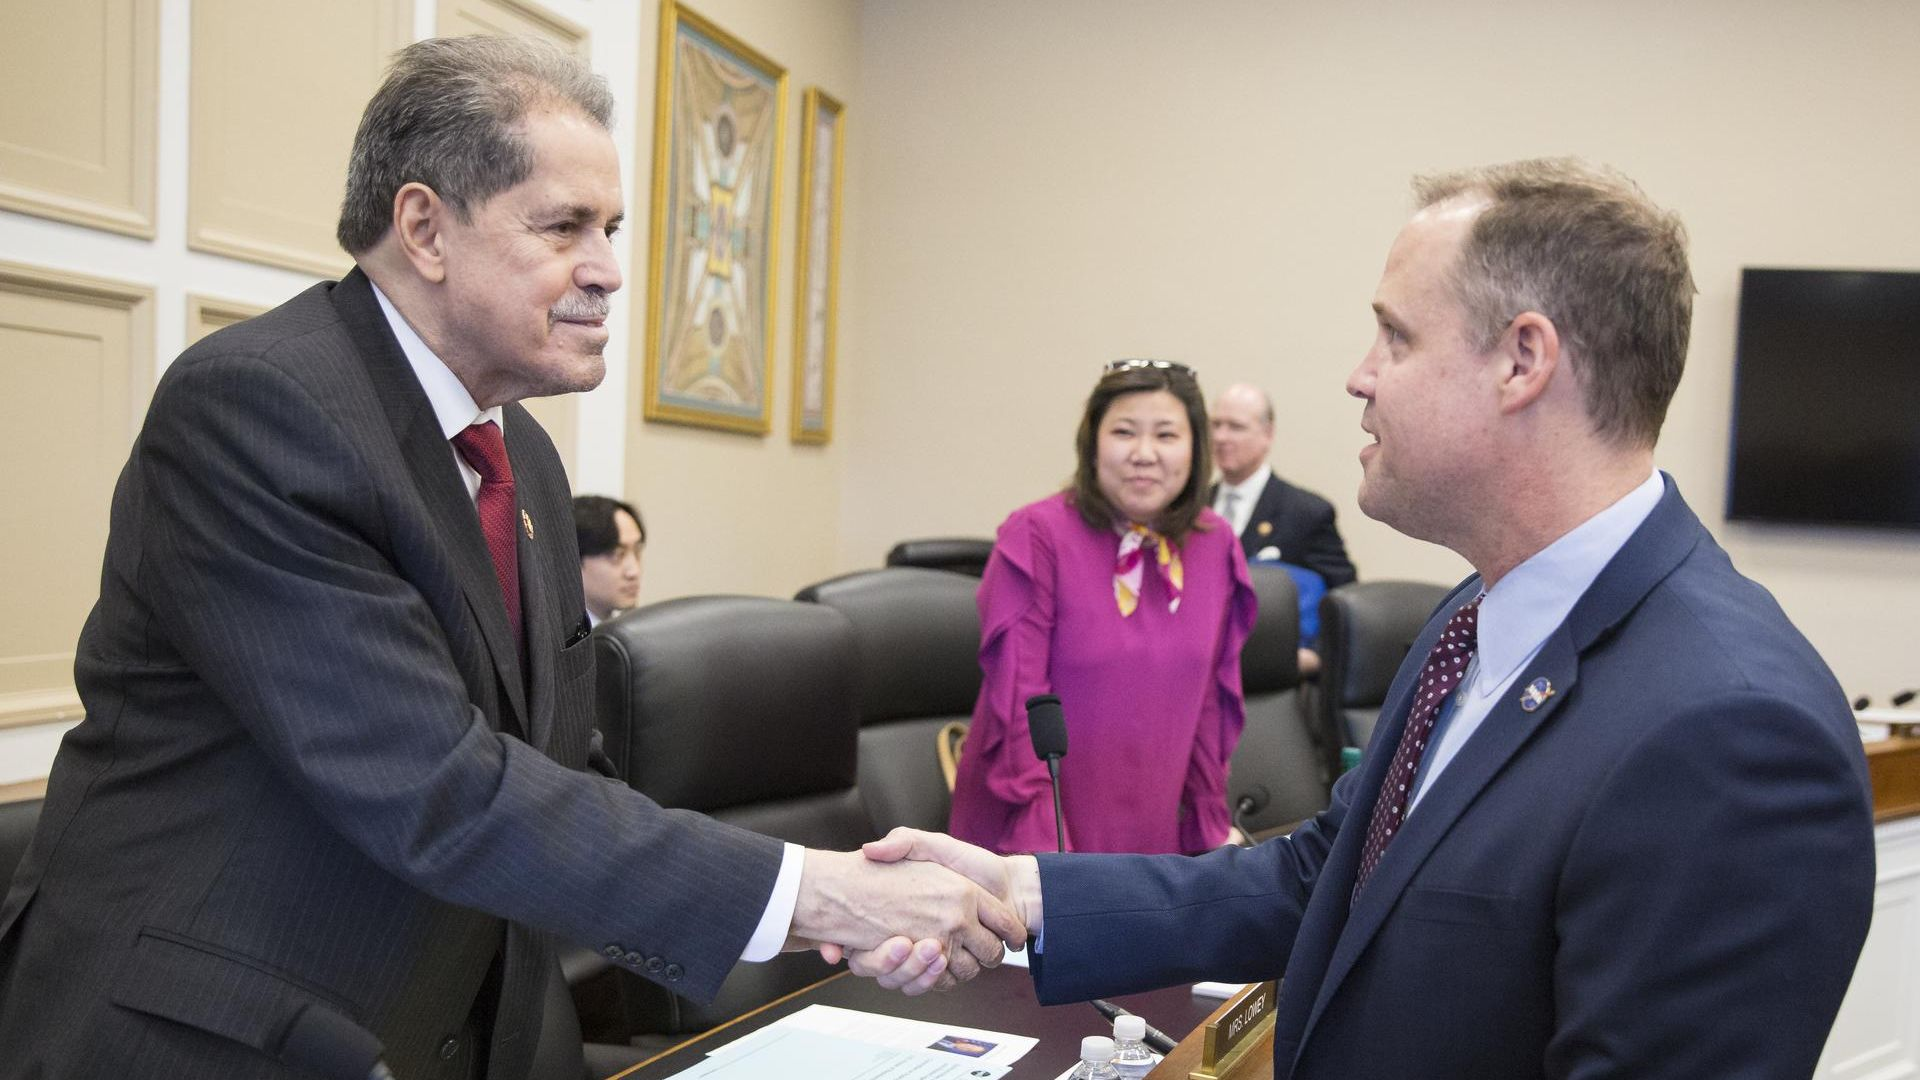 NASA Administrator Jim Bridenstine, right, is seen with Representative José Serrano, chair of the House Appropriations Committee's Commerce, Justice, Science, and Related Agencies Subcommittee prior to a hearing on March 27.